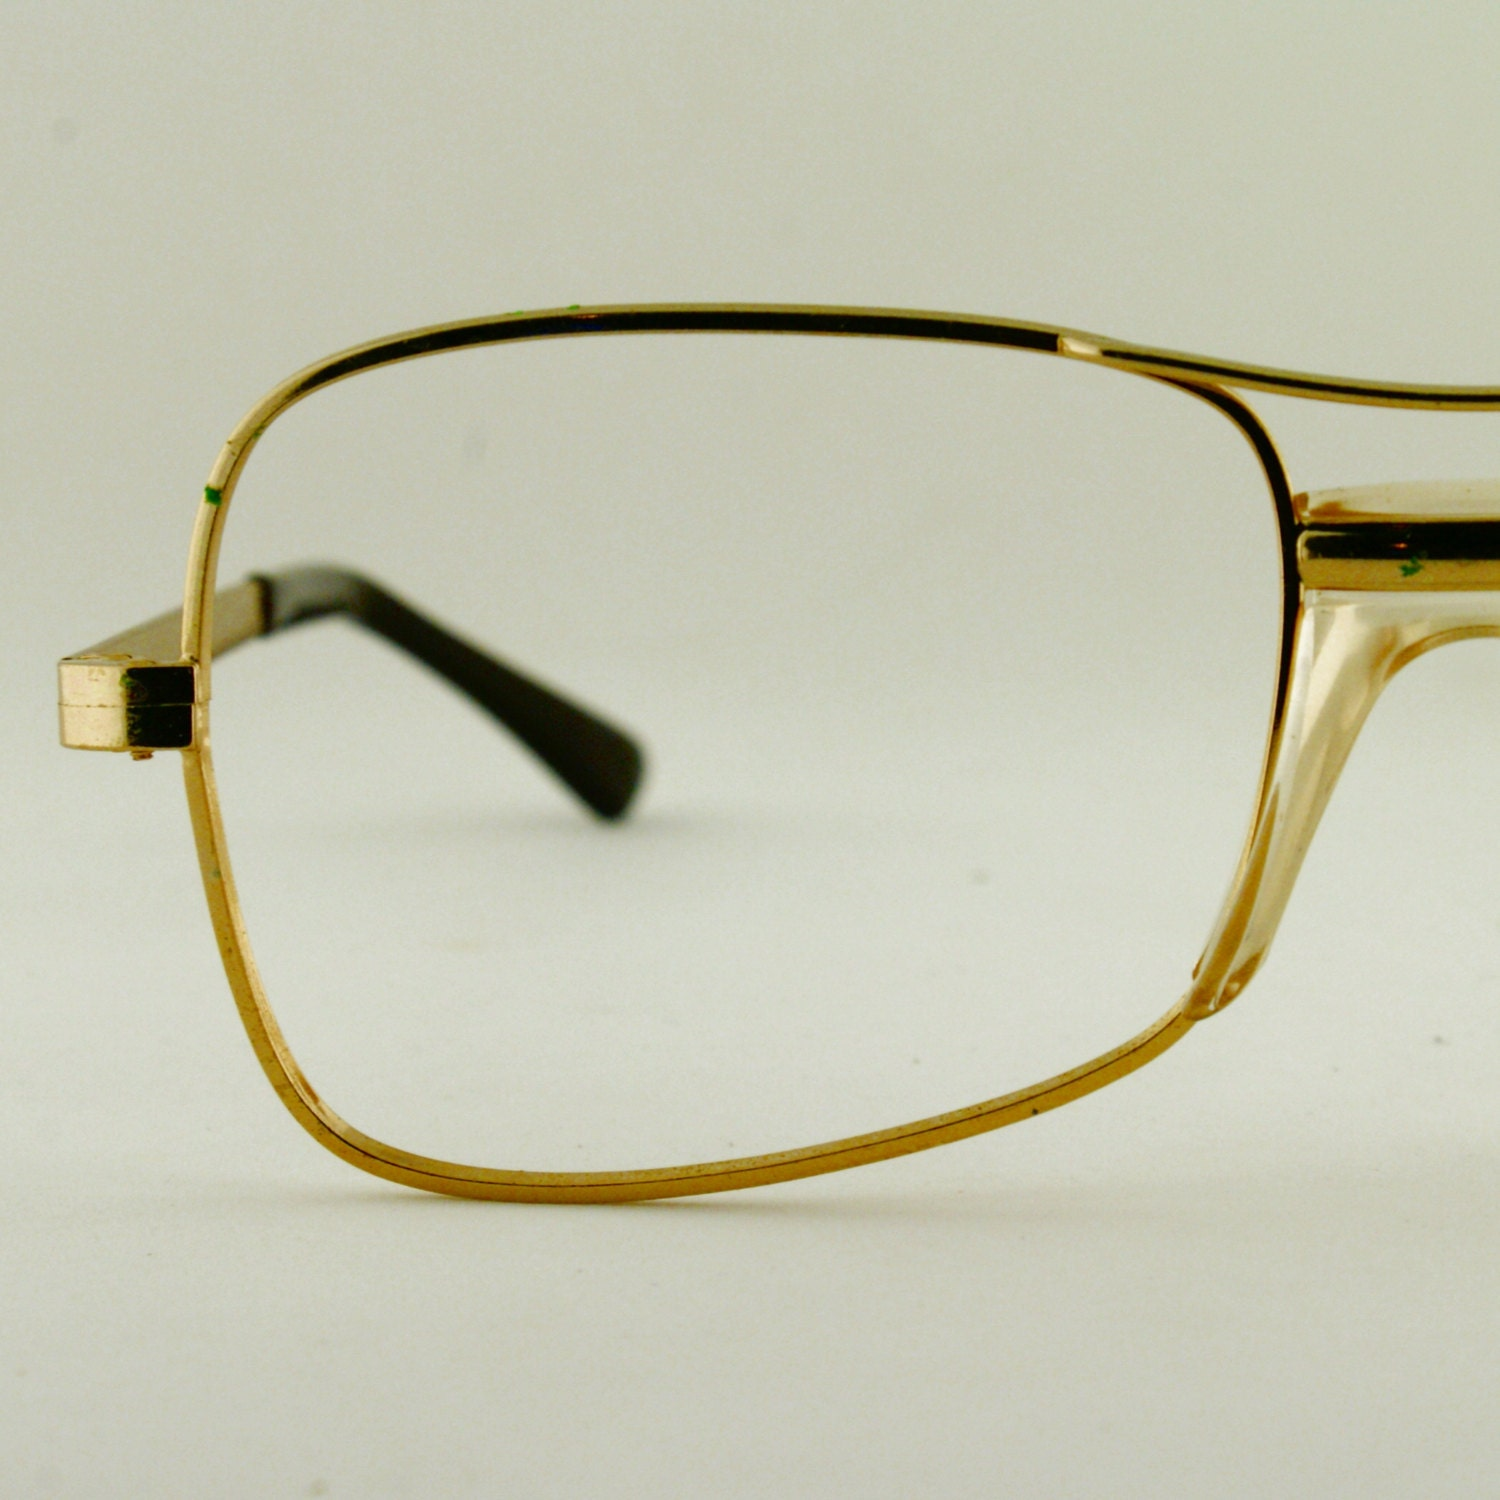 Eyeglass Frames Gold : Vintage Mens Gold Aviator Eyeglass COTTET Frames France